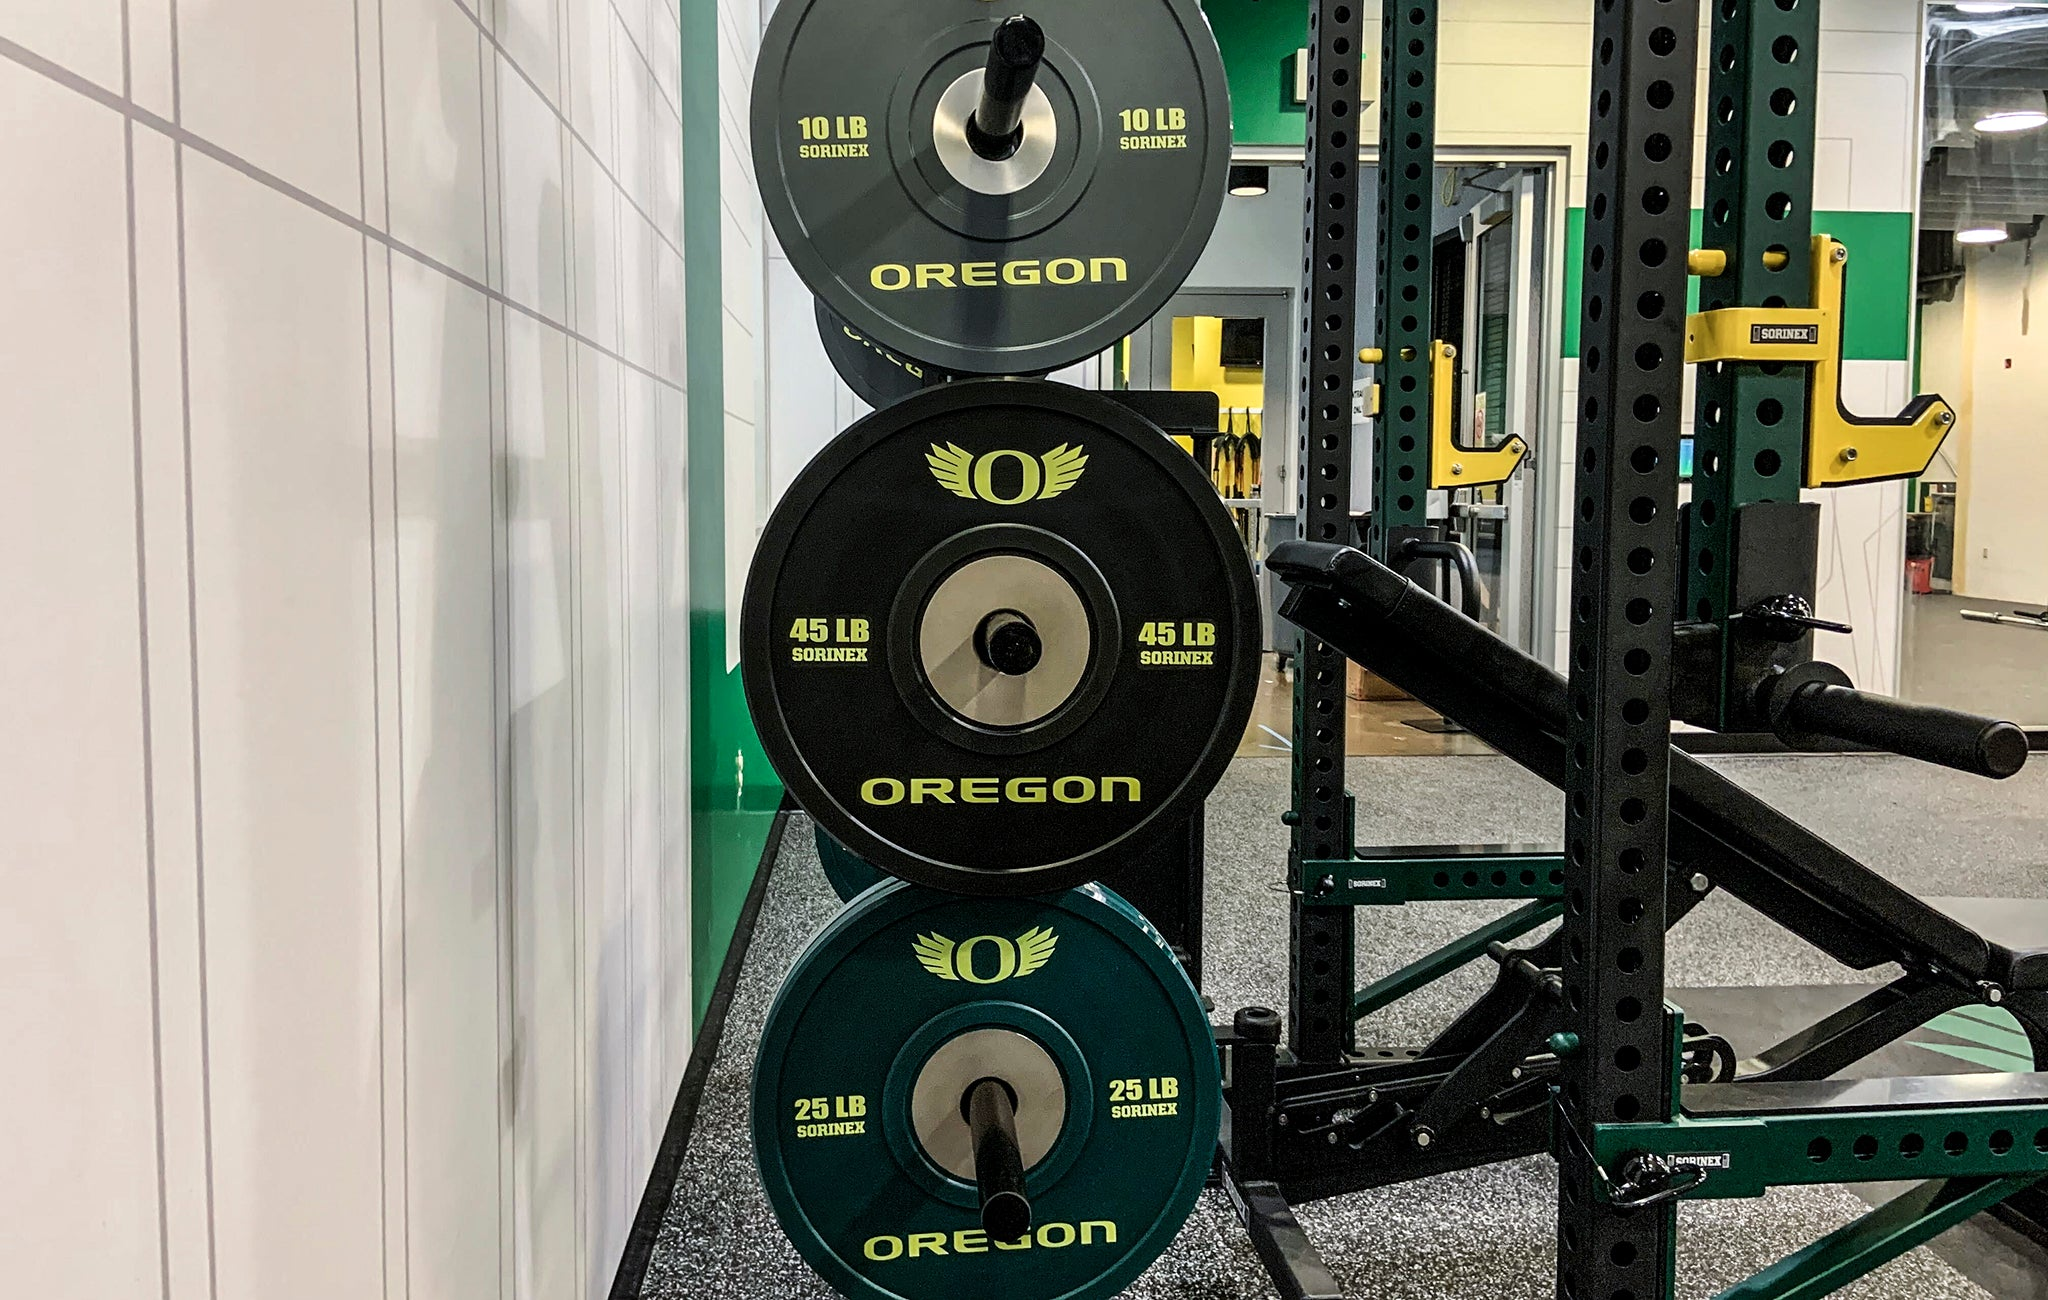 Oregon strength and conditioning